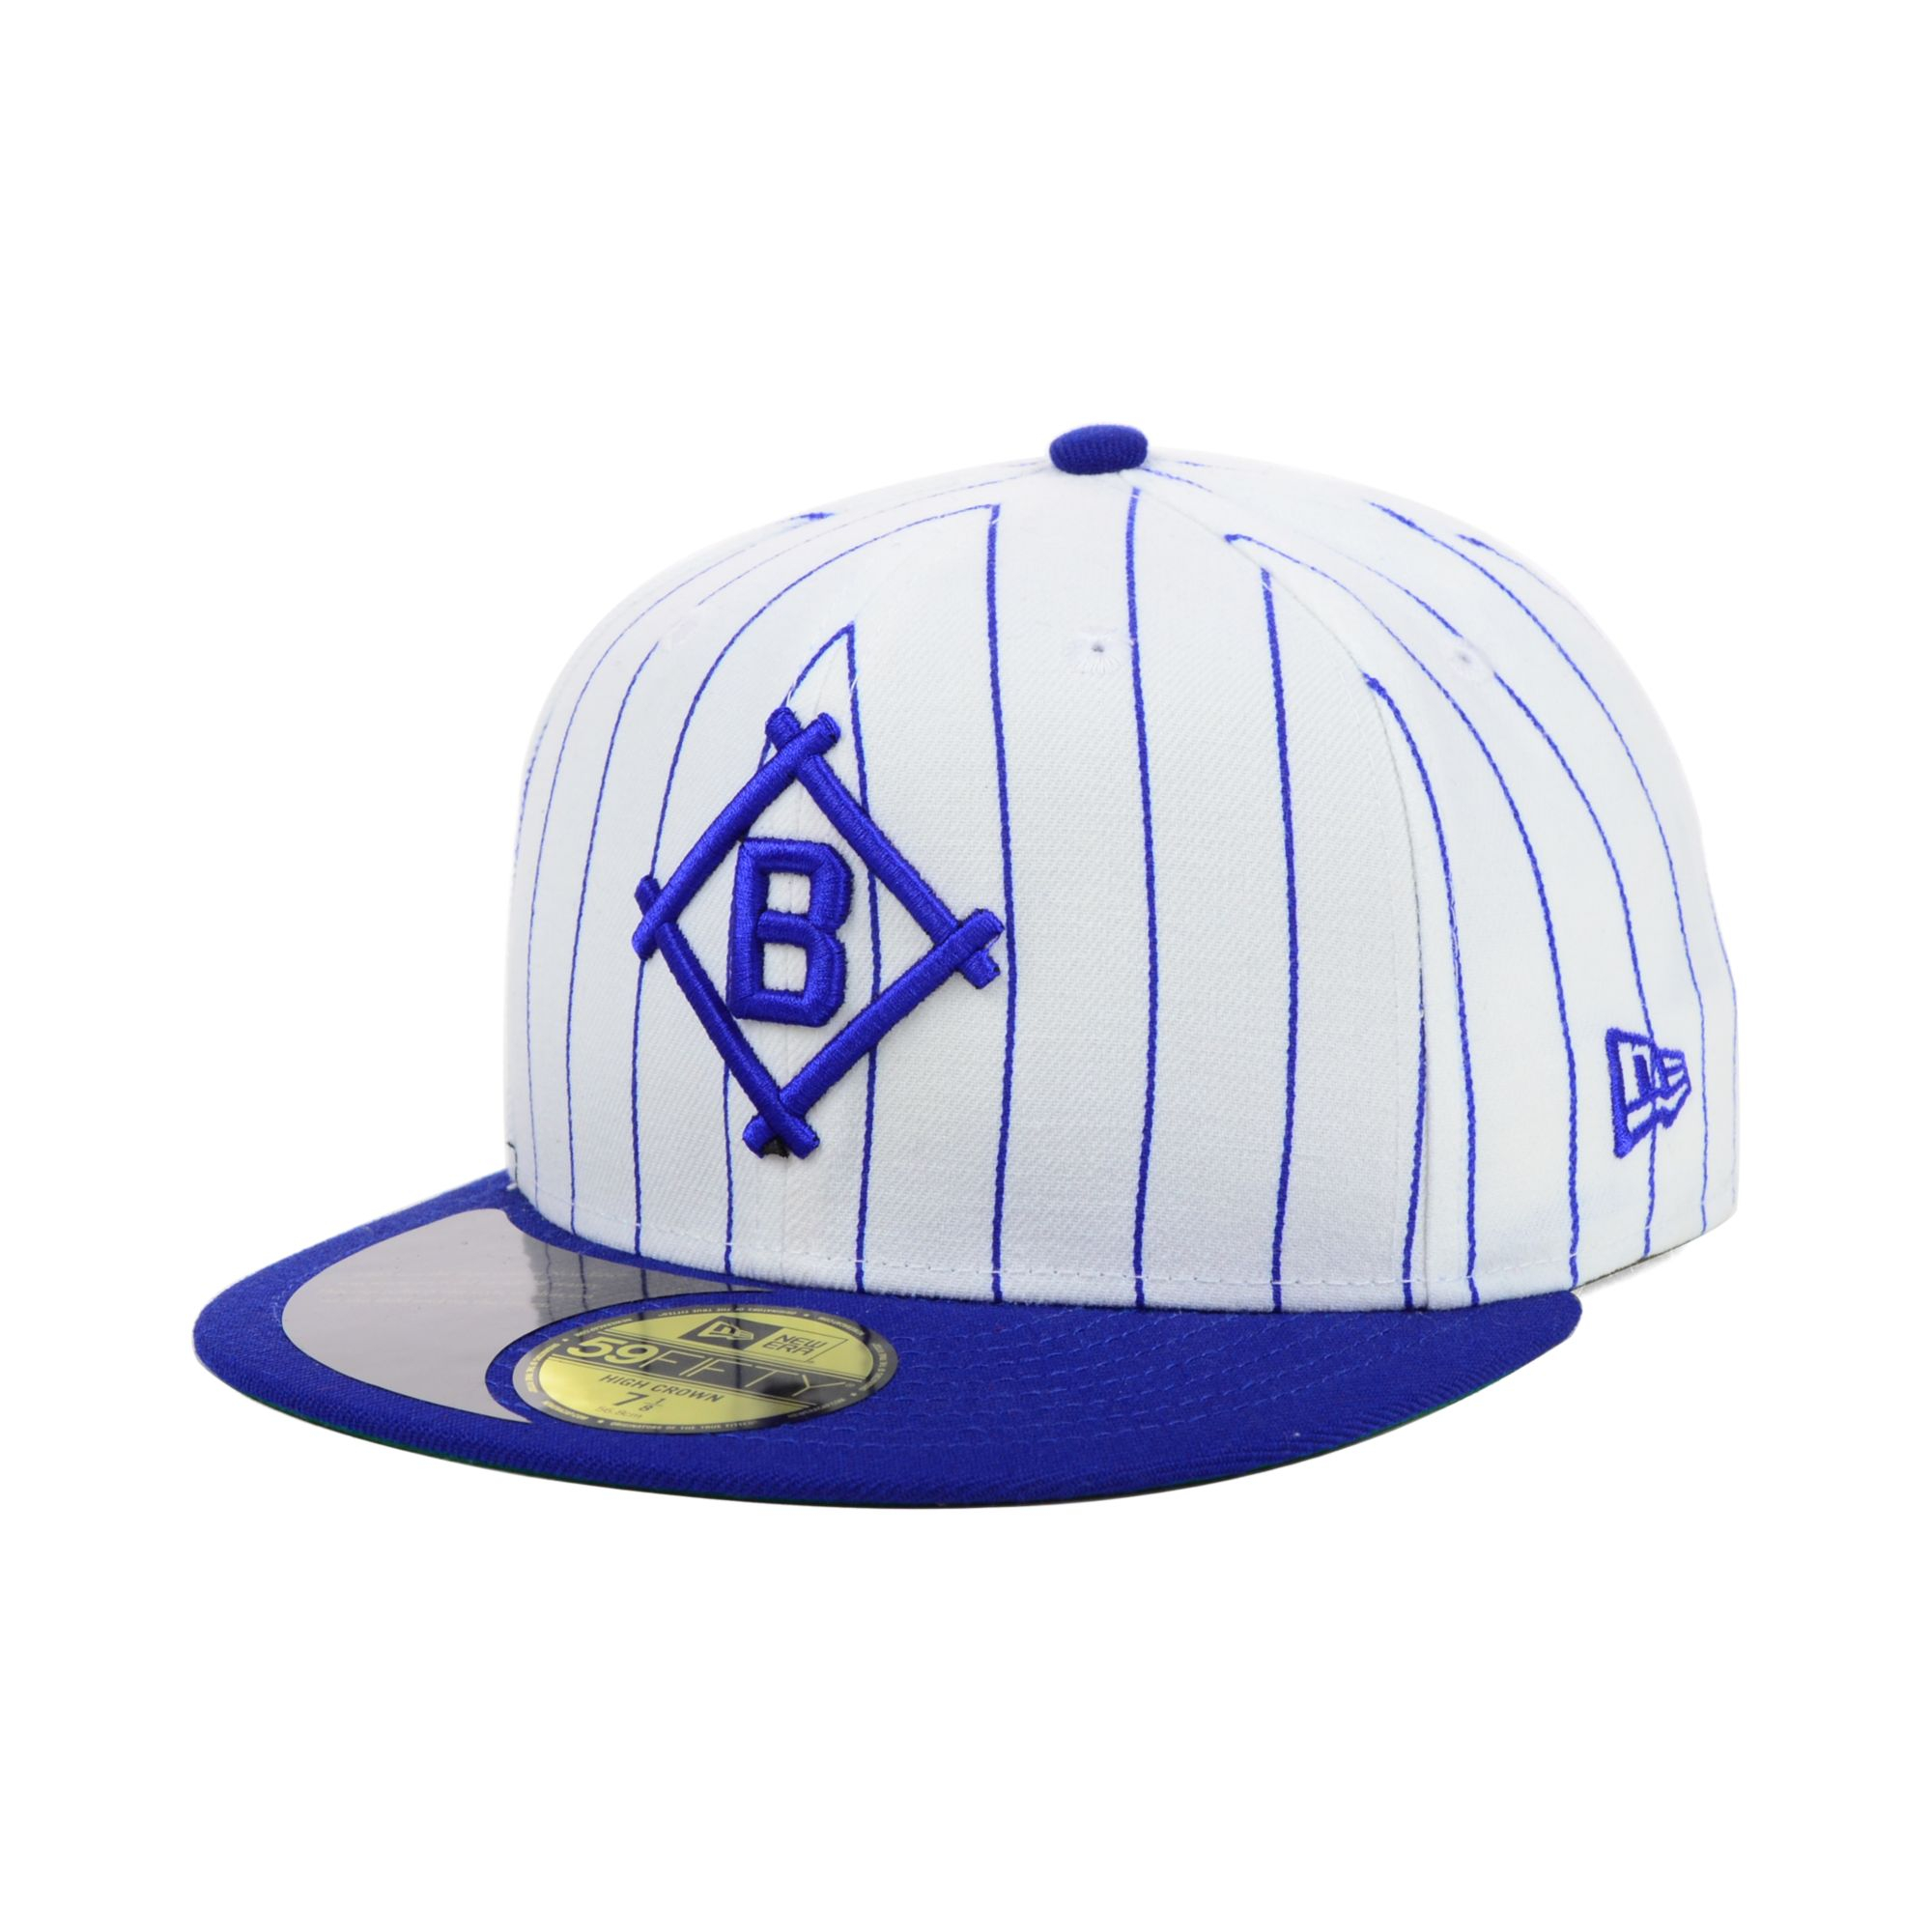 Lyst - KTZ Brooklyn Dodgers Legacy Collection 59fifty Cap in Green ... 7c1f41658c3